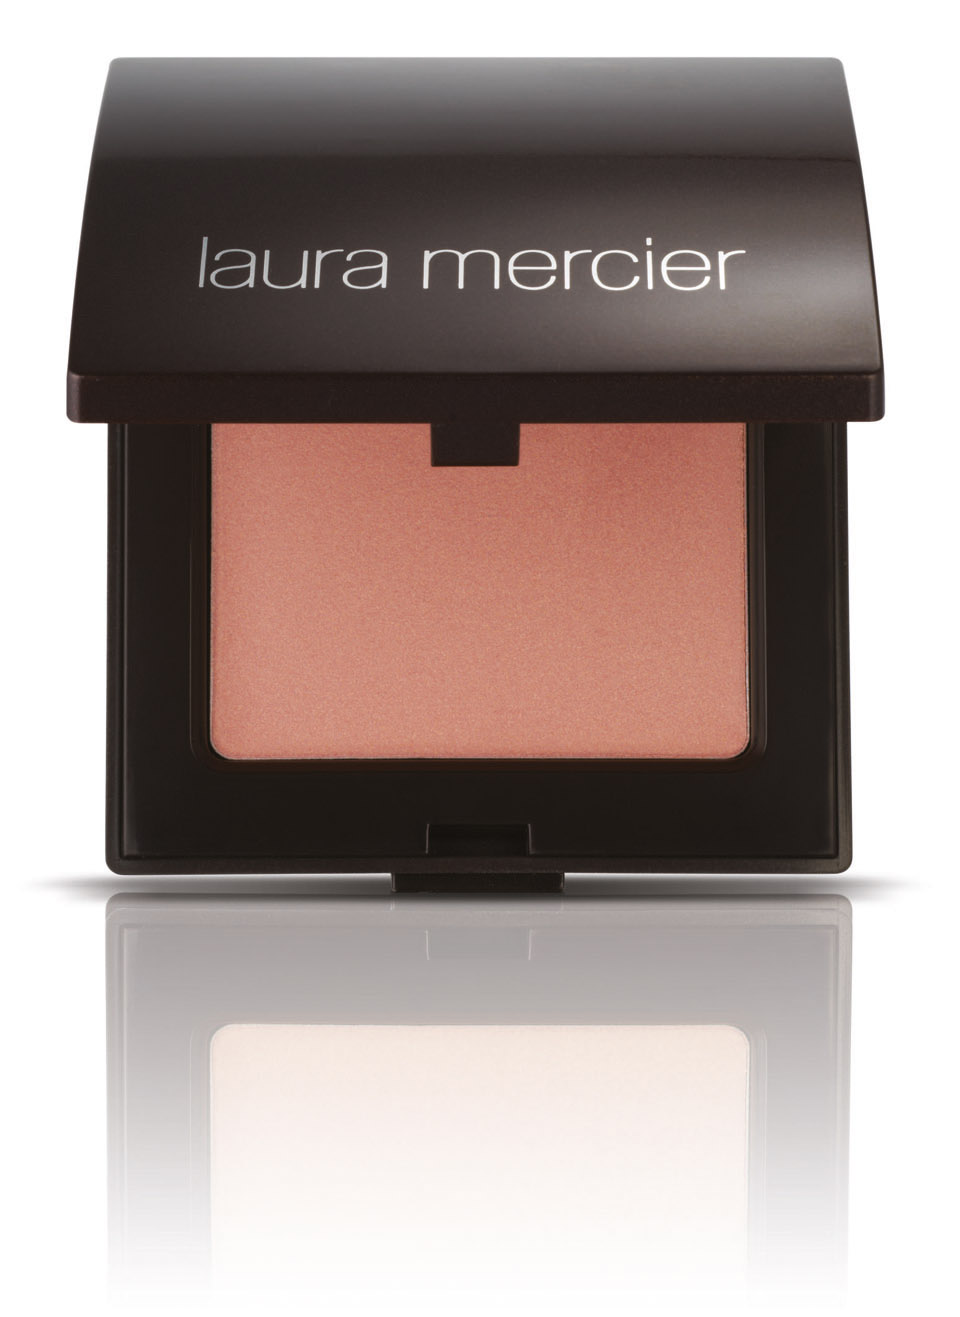 LAURA MERCIER Second Skin Cheek Colour Golden Pink New Attitude Collection